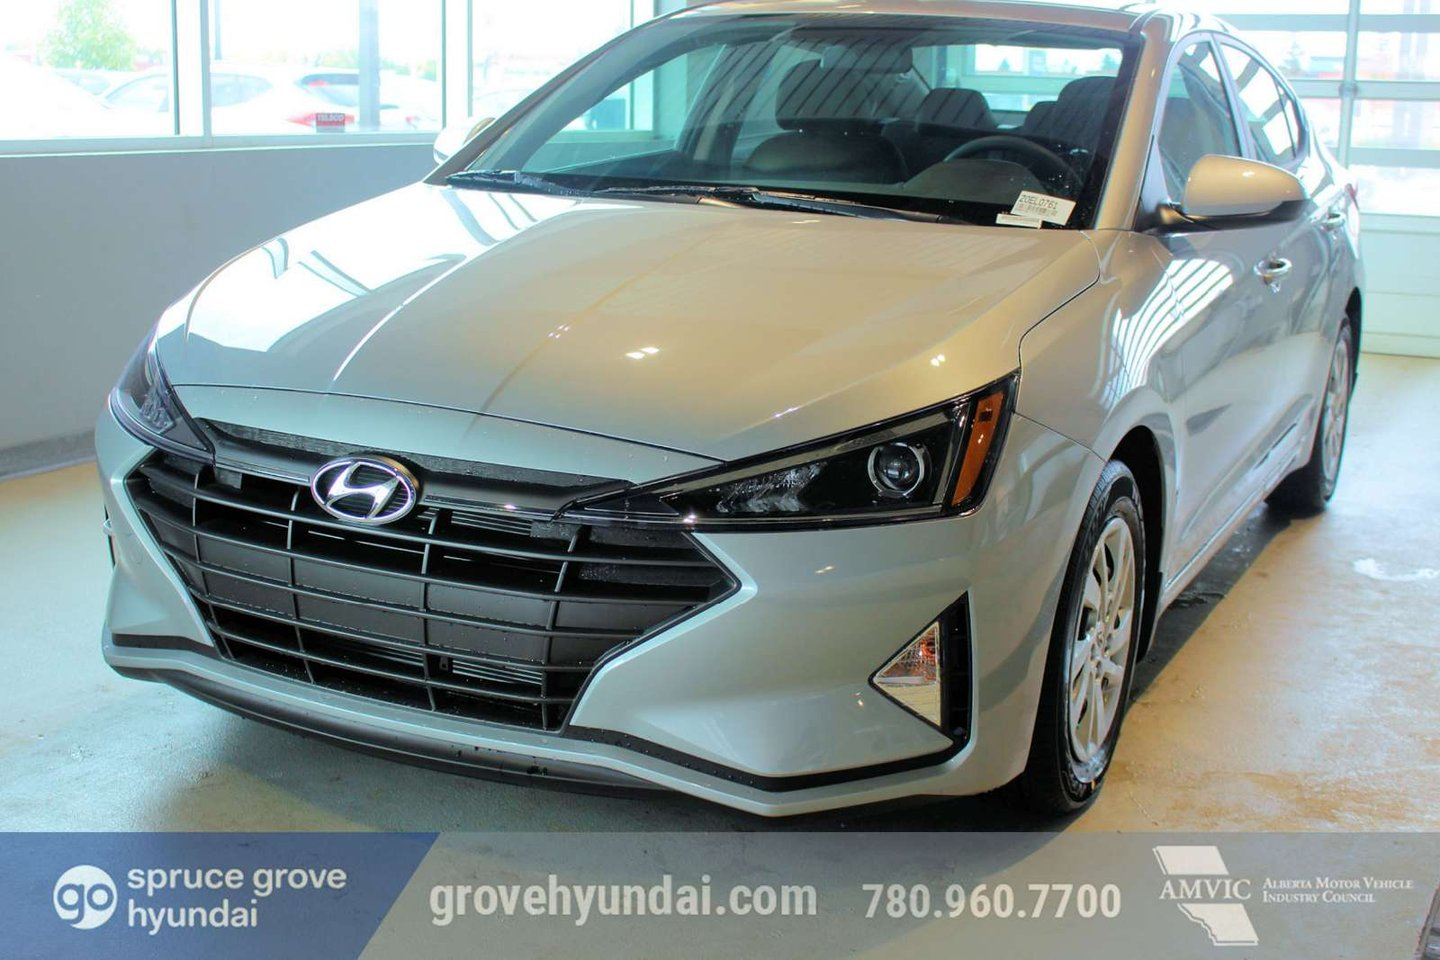 2020 Hyundai Elantra Essential for sale in Spruce Grove, Alberta